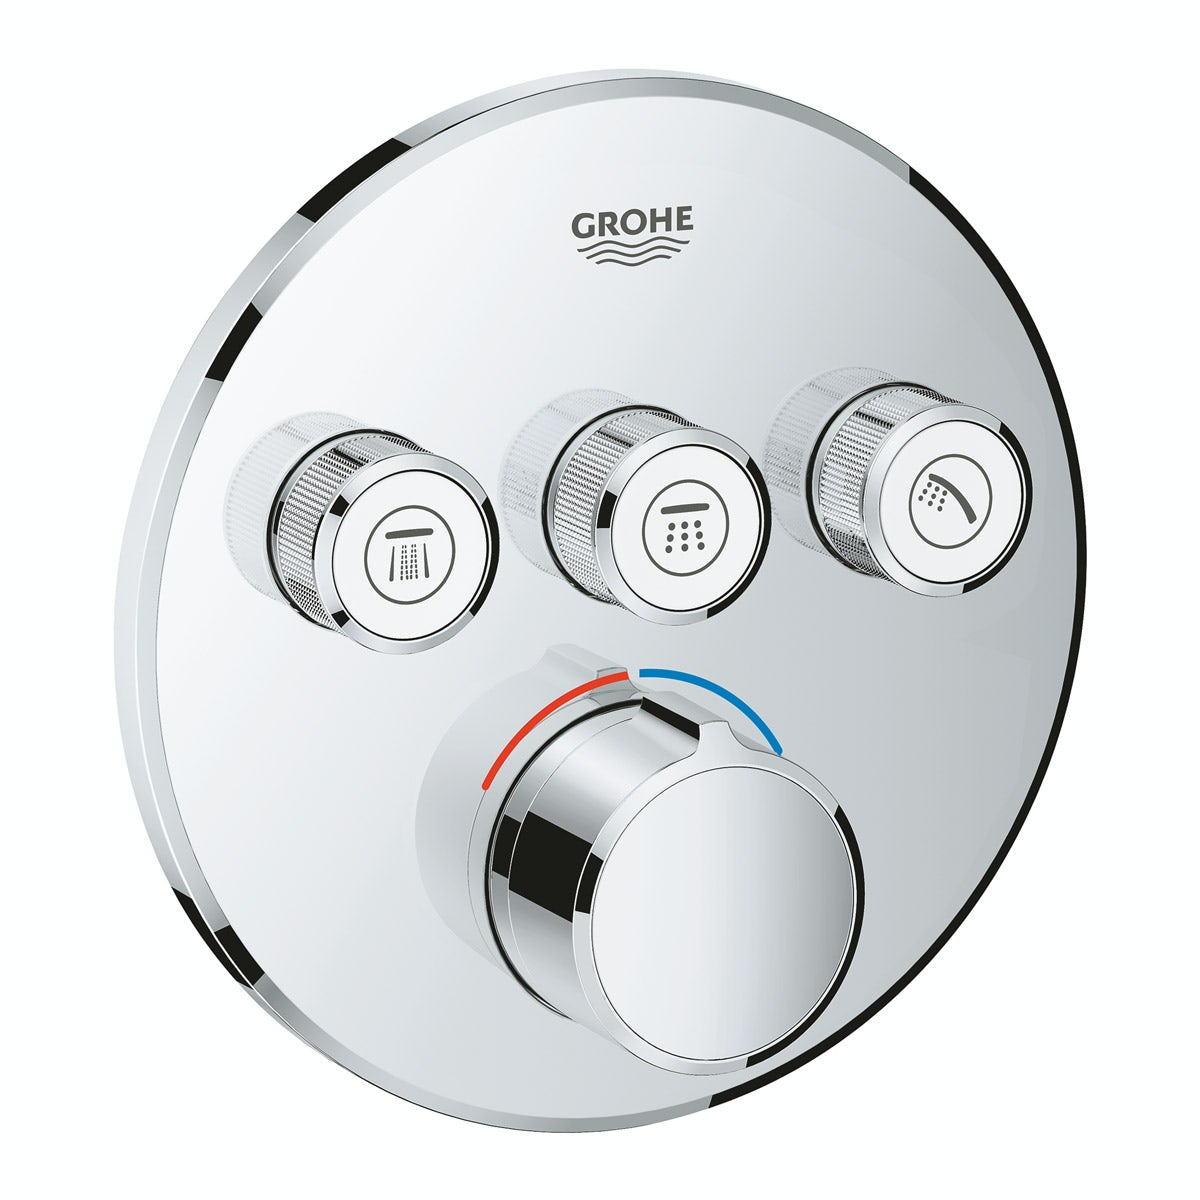 Grohe SmartControl round concealed 3 way shower valve trimset